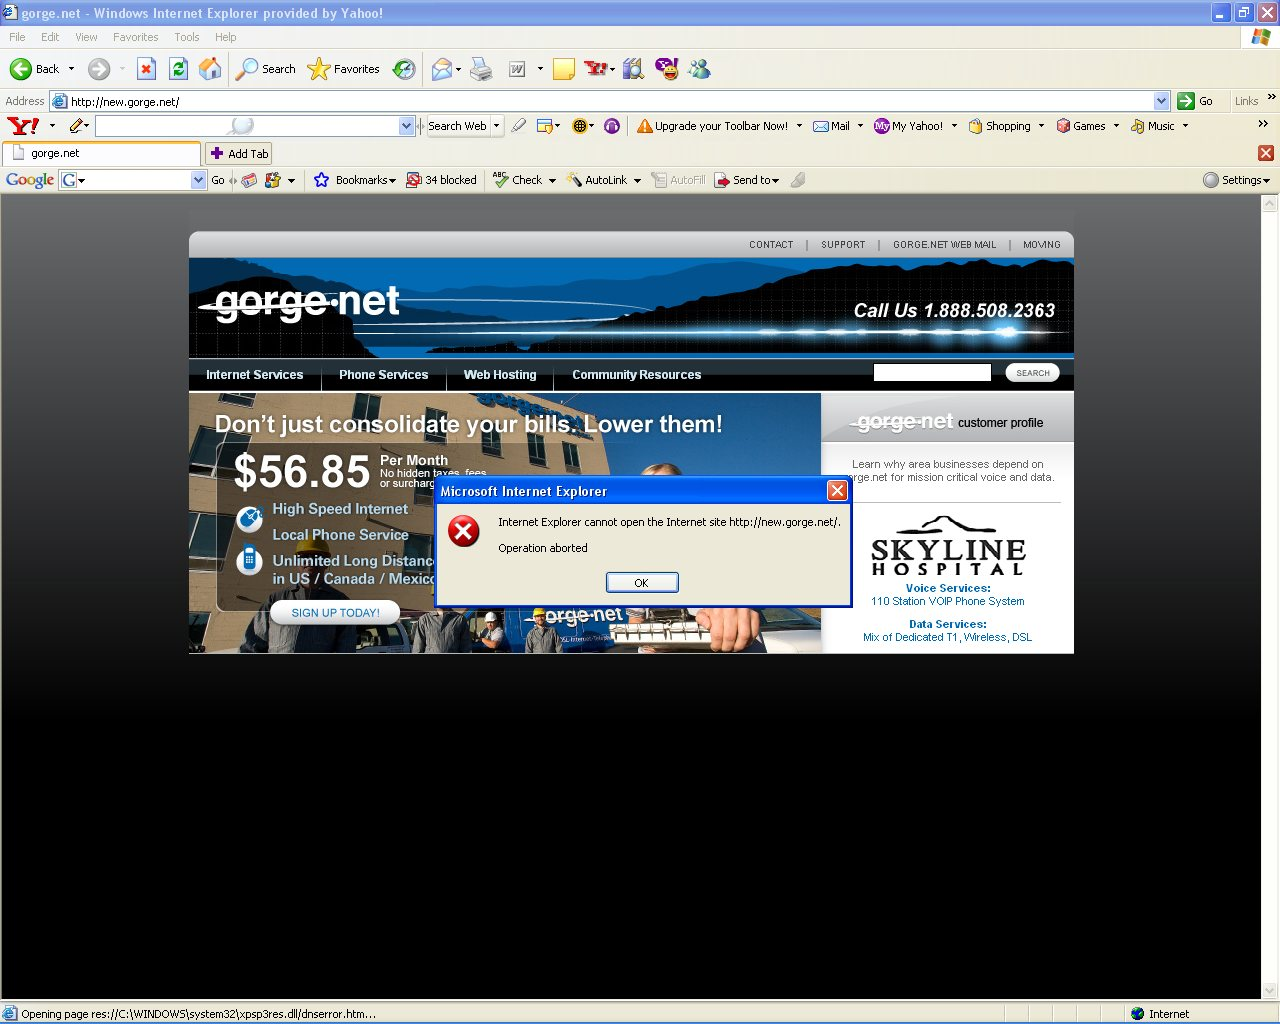 Getting this error with IE. Internet Explorer cannot open the ...